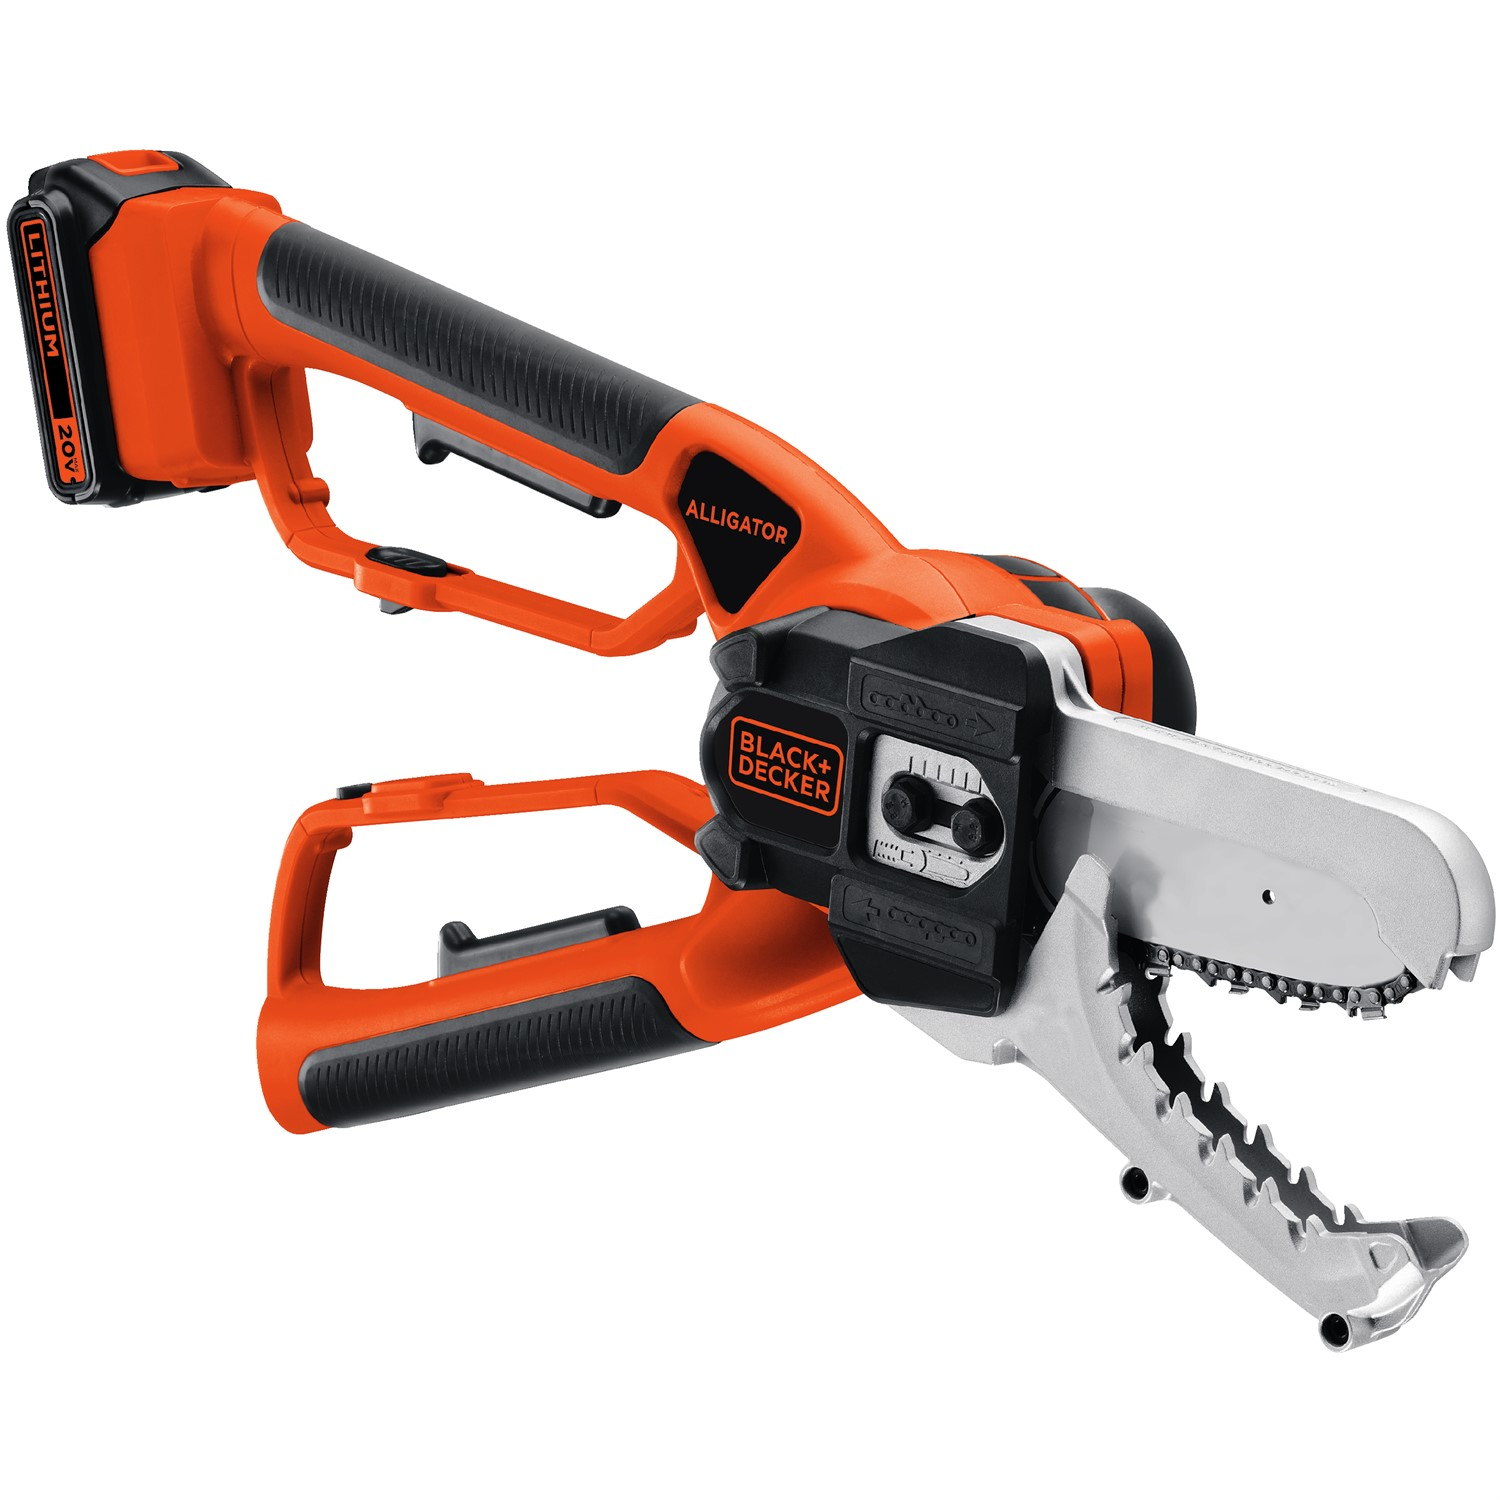 BLACK+DECKER LLP120 20V MAX Cordless Lithium-Ion Alligator Lopper Kit